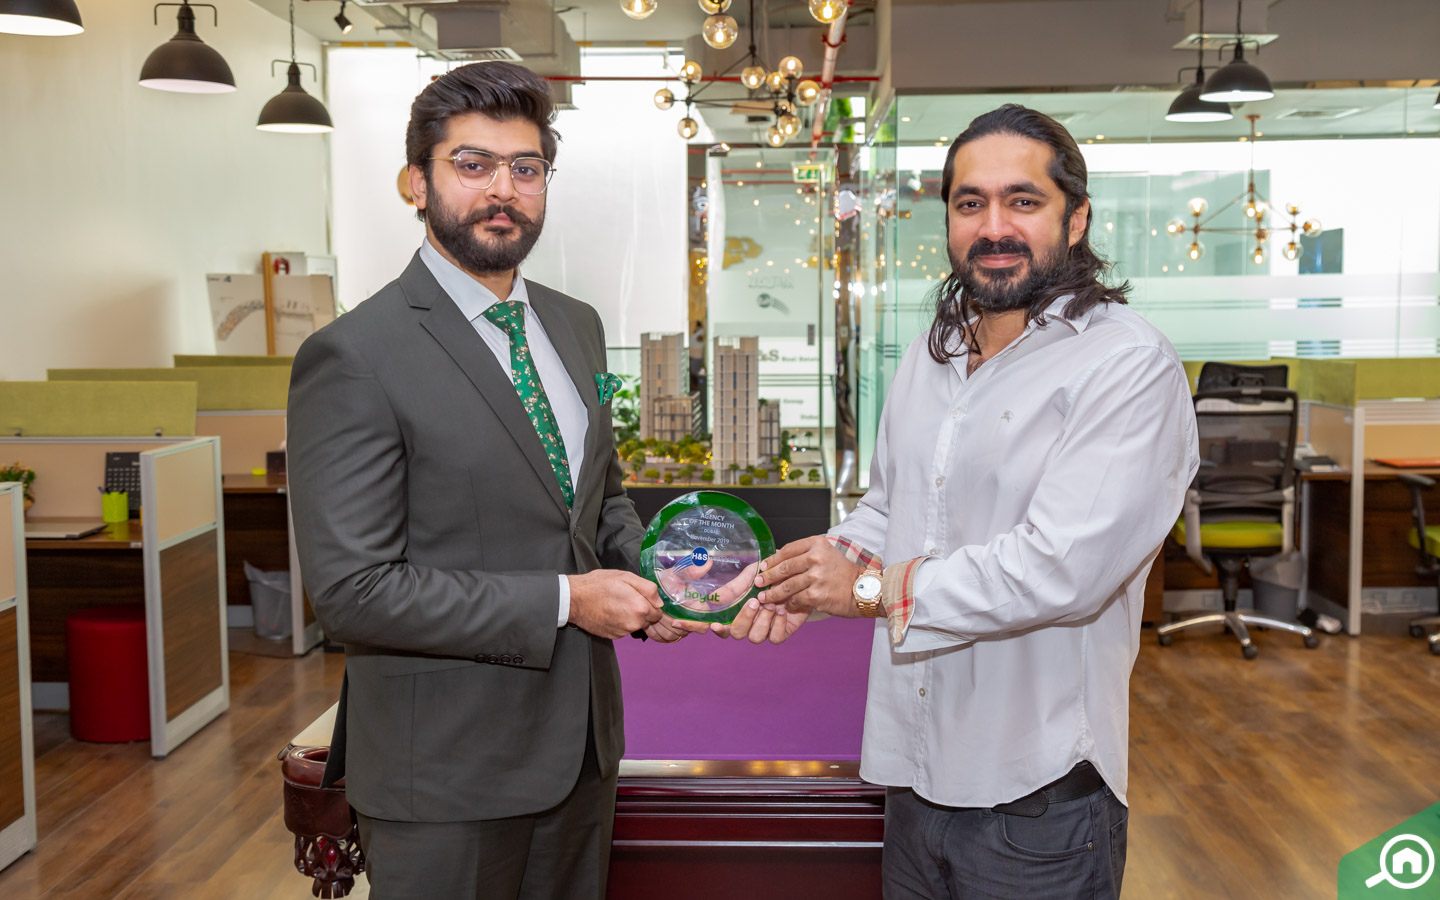 Emad Haq, CEO of H&S Real Estate, receives award for best real estate agency in Dubai